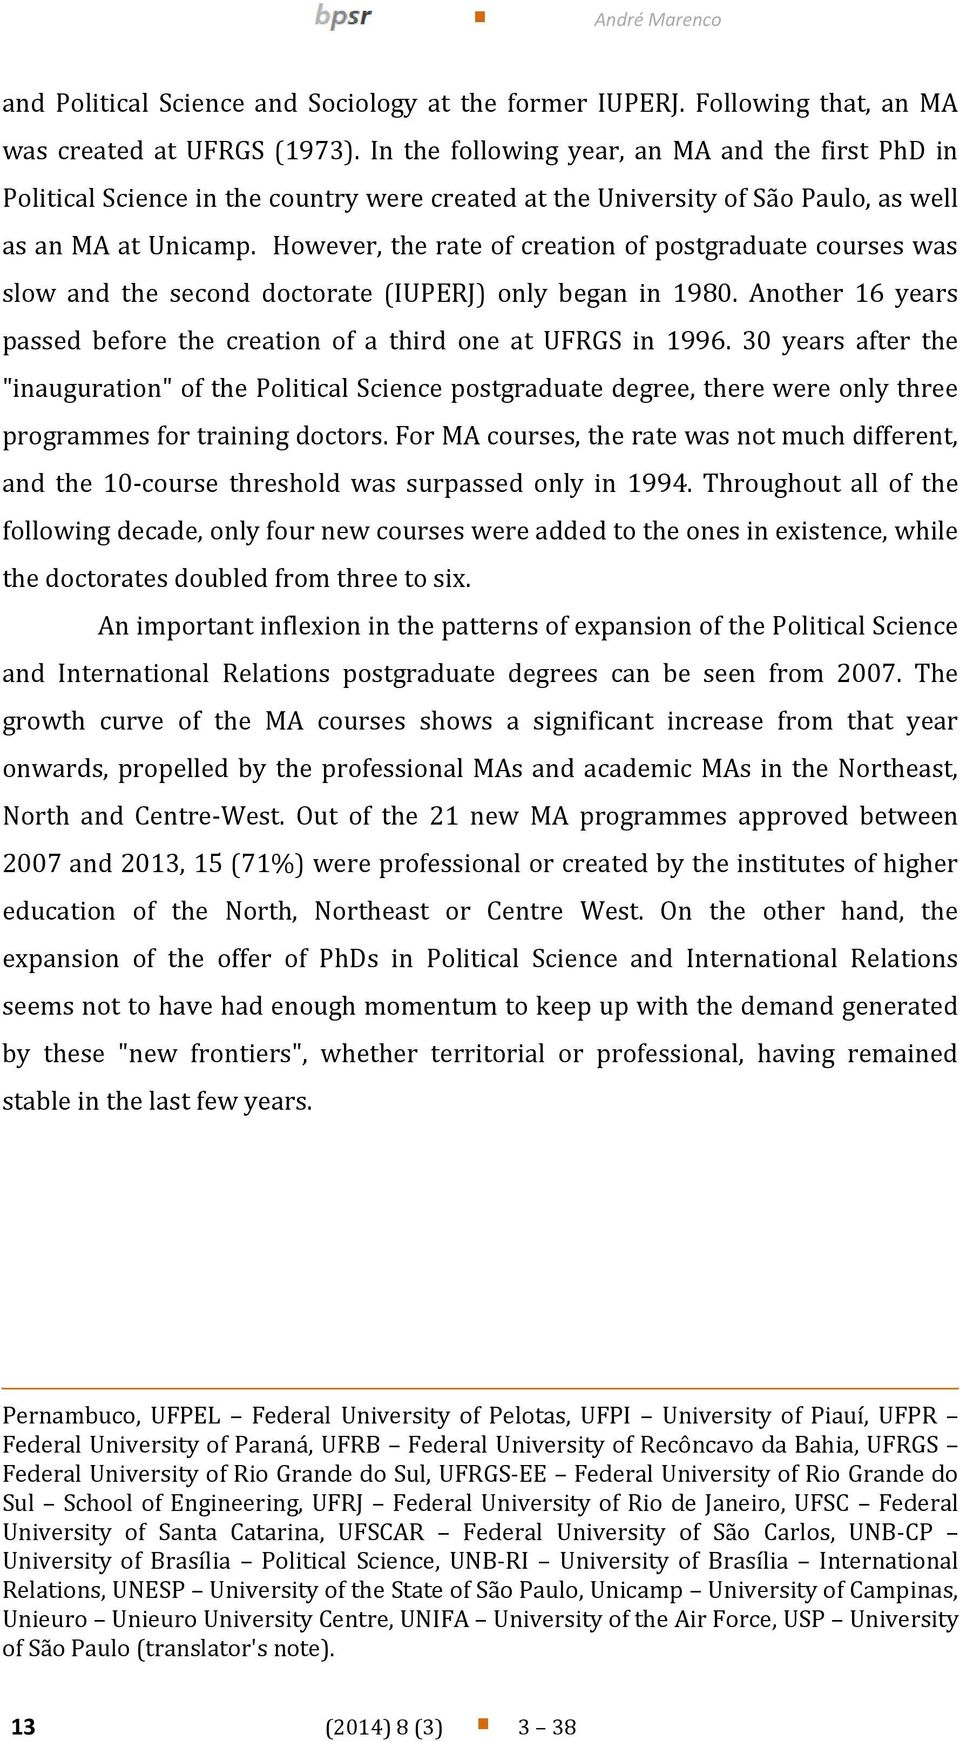 However, the rate of creation of postgraduate courses was slow and the second doctorate (IUPERJ) only began in 1980. Another 16 years passed before the creation of a third one at UFRGS in 1996.